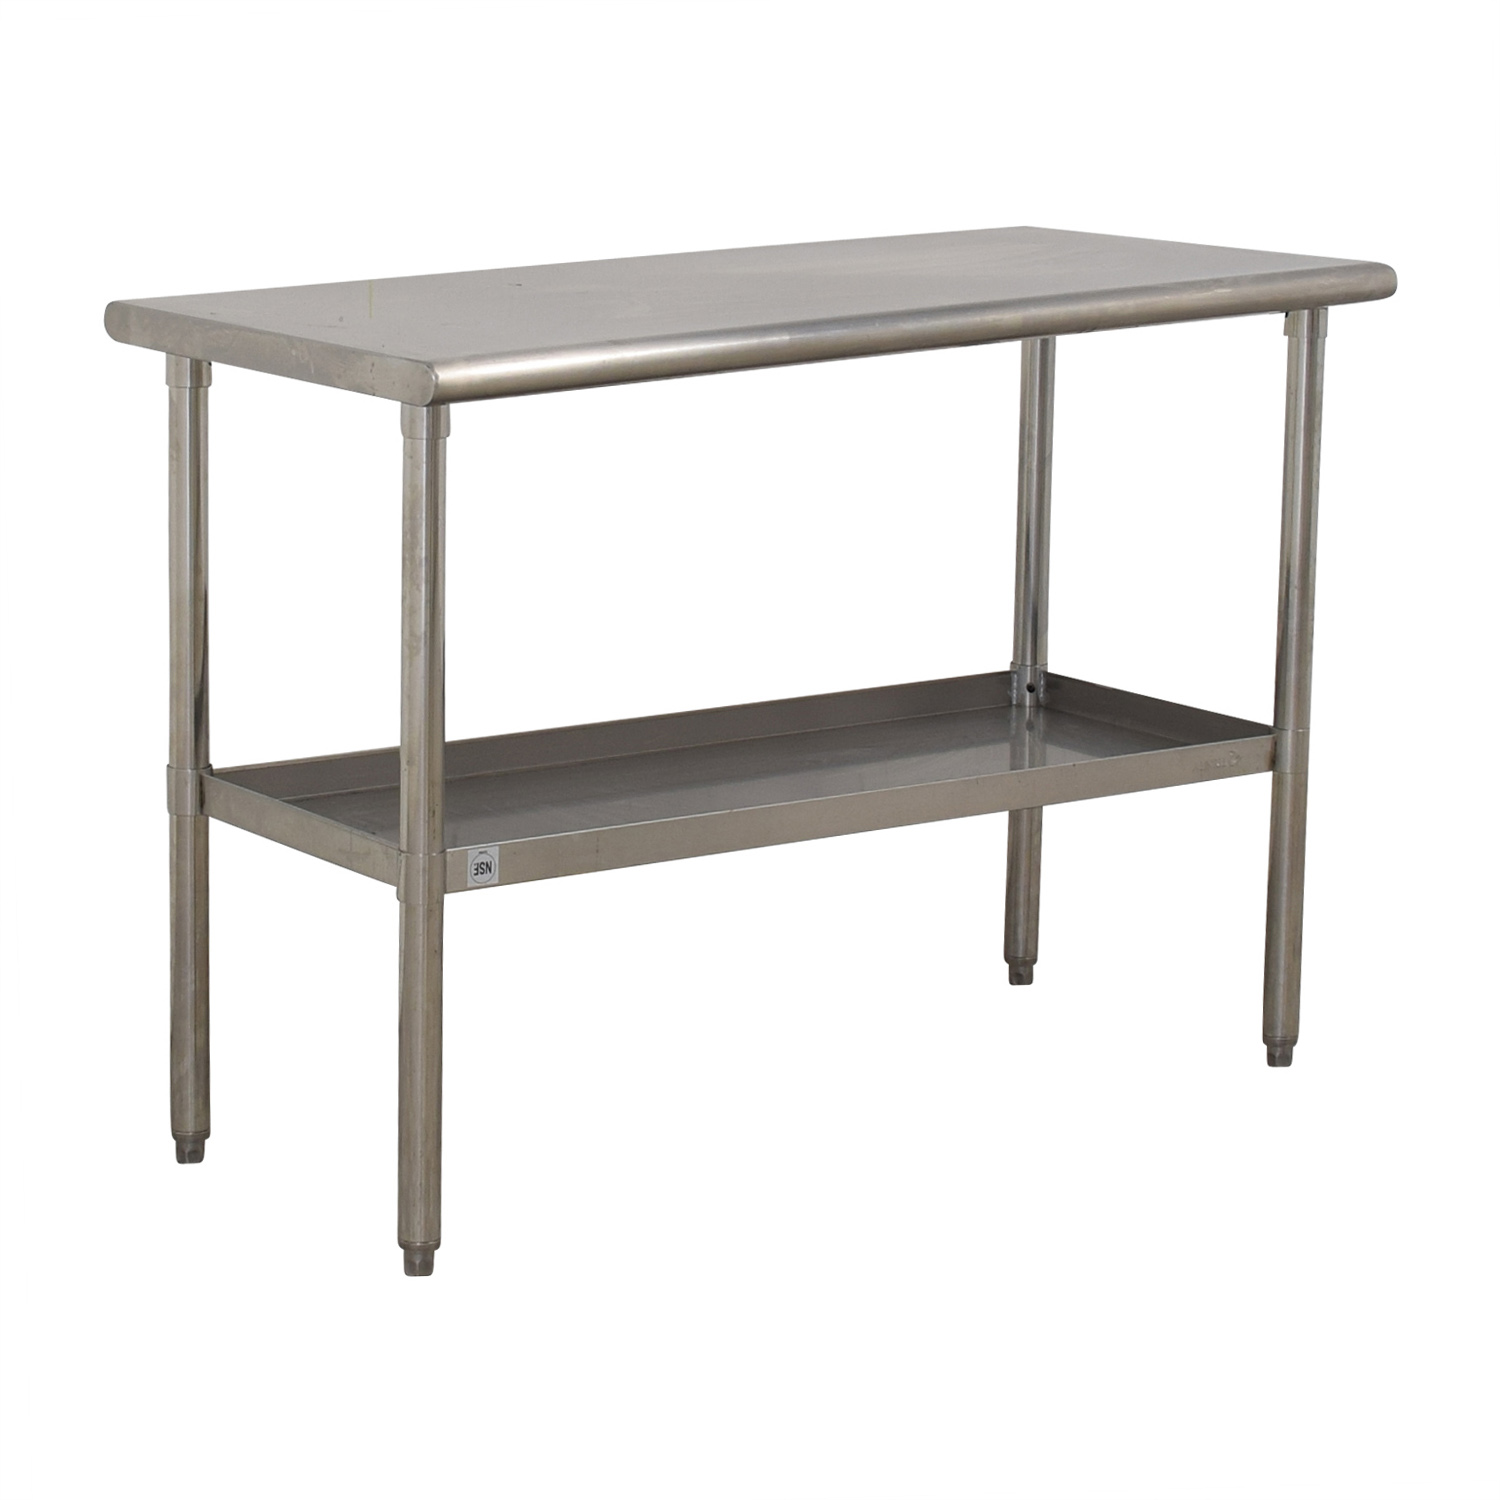 NSF Stainless Preparation Two-Tier Table / Tables